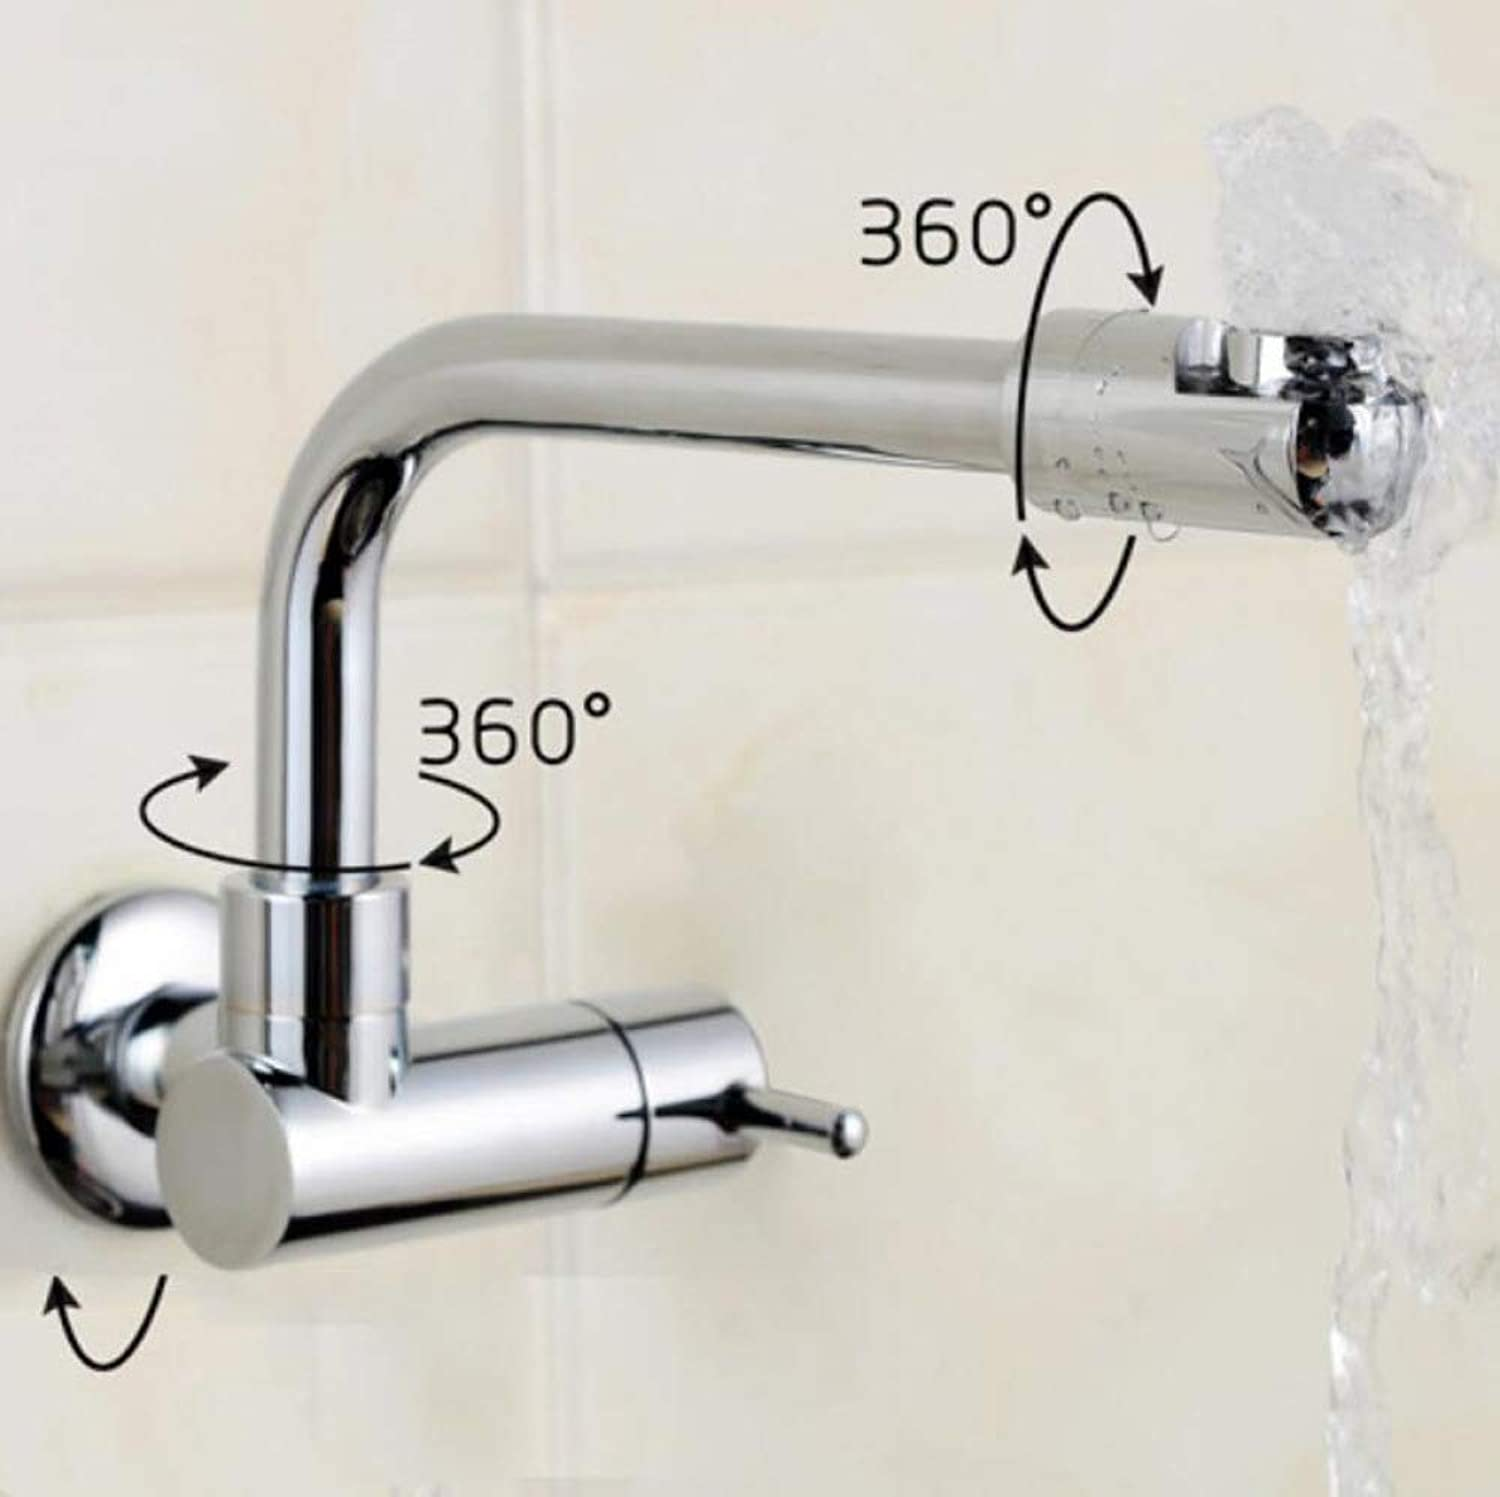 SLTYSCF Faucet SinkFine Copper 360 Degree redating Wall Faucet, Extended Single Cold Universal Kitchen Bathroom Faucet